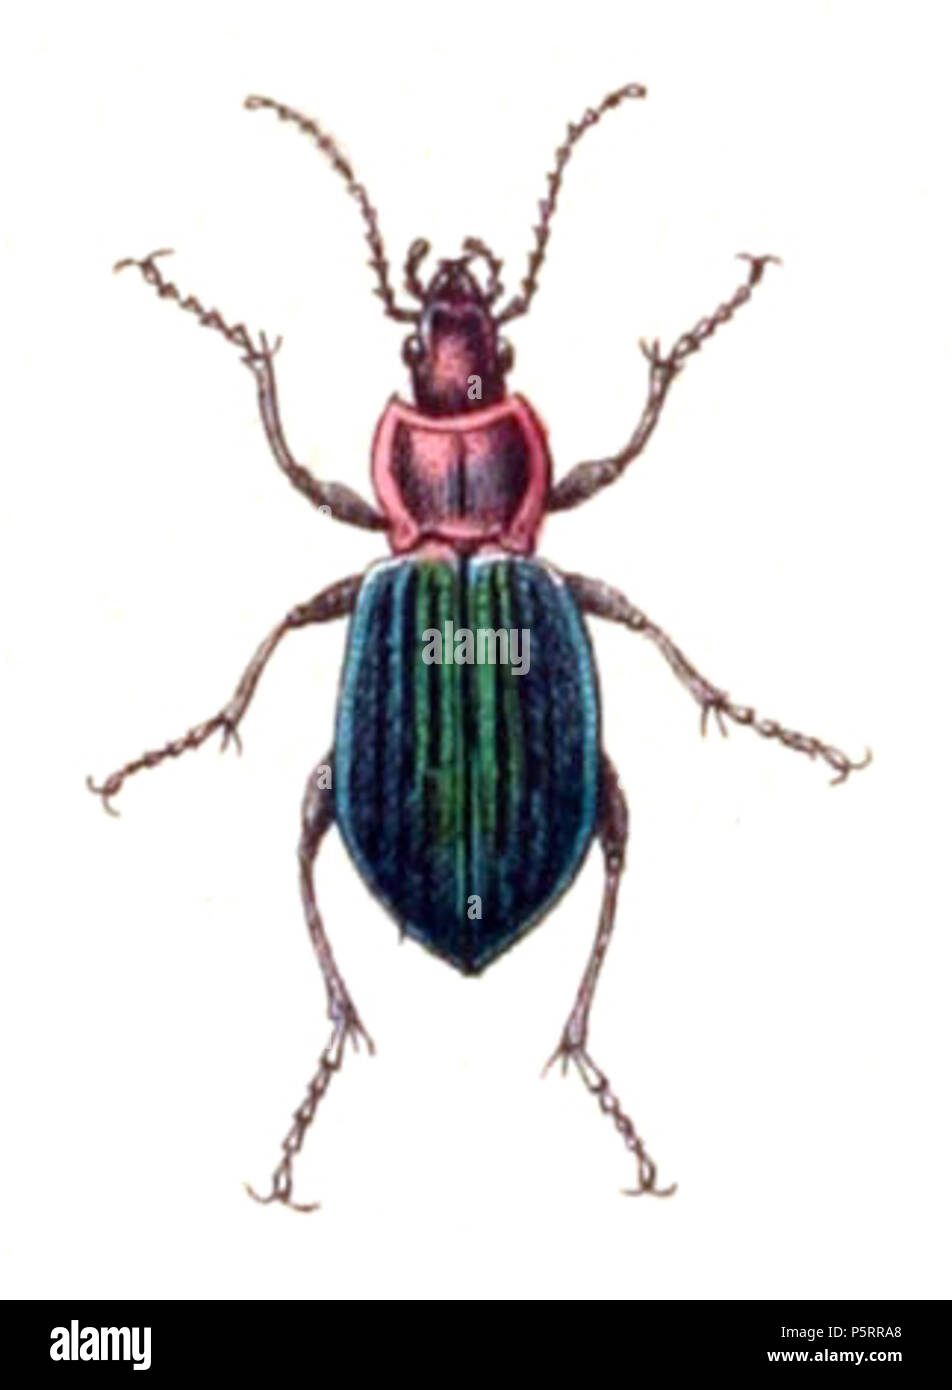 N/A. Carabus nitens, from Calwer's Käferbuch, Table 3, Picture 6. Taxonomy was updated to 2008, using mostly the sites Fauna Europaea and BioLib. Please contact Sarefo if the determination is wrong! . 1876. Book by   Carl Gustav Calwer  (1821–1874)    Description German ornithologist and entomologist  Date of birth/death 11 November 1821 19 August 1874  Location of birth/death Stuttgart Mineralbad Berg  Authority control  : Q78413 VIAF:64757747 ISNI:0000 0001 0980 5321 GND:116432969 SUDOC:146603133 Koninklijke:07228000X      Gustav Jäger  (1832–1917)     Alternative names Gustav Jaeger; Gustav - Stock Image